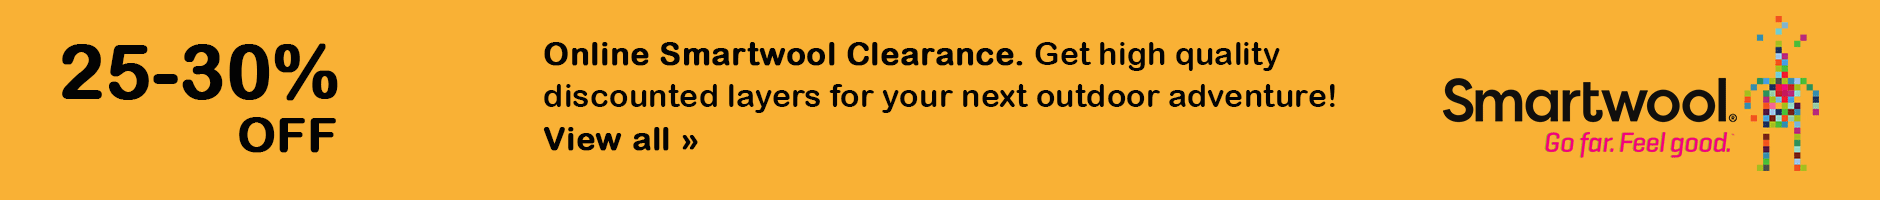 Shop Smartwool Clearance